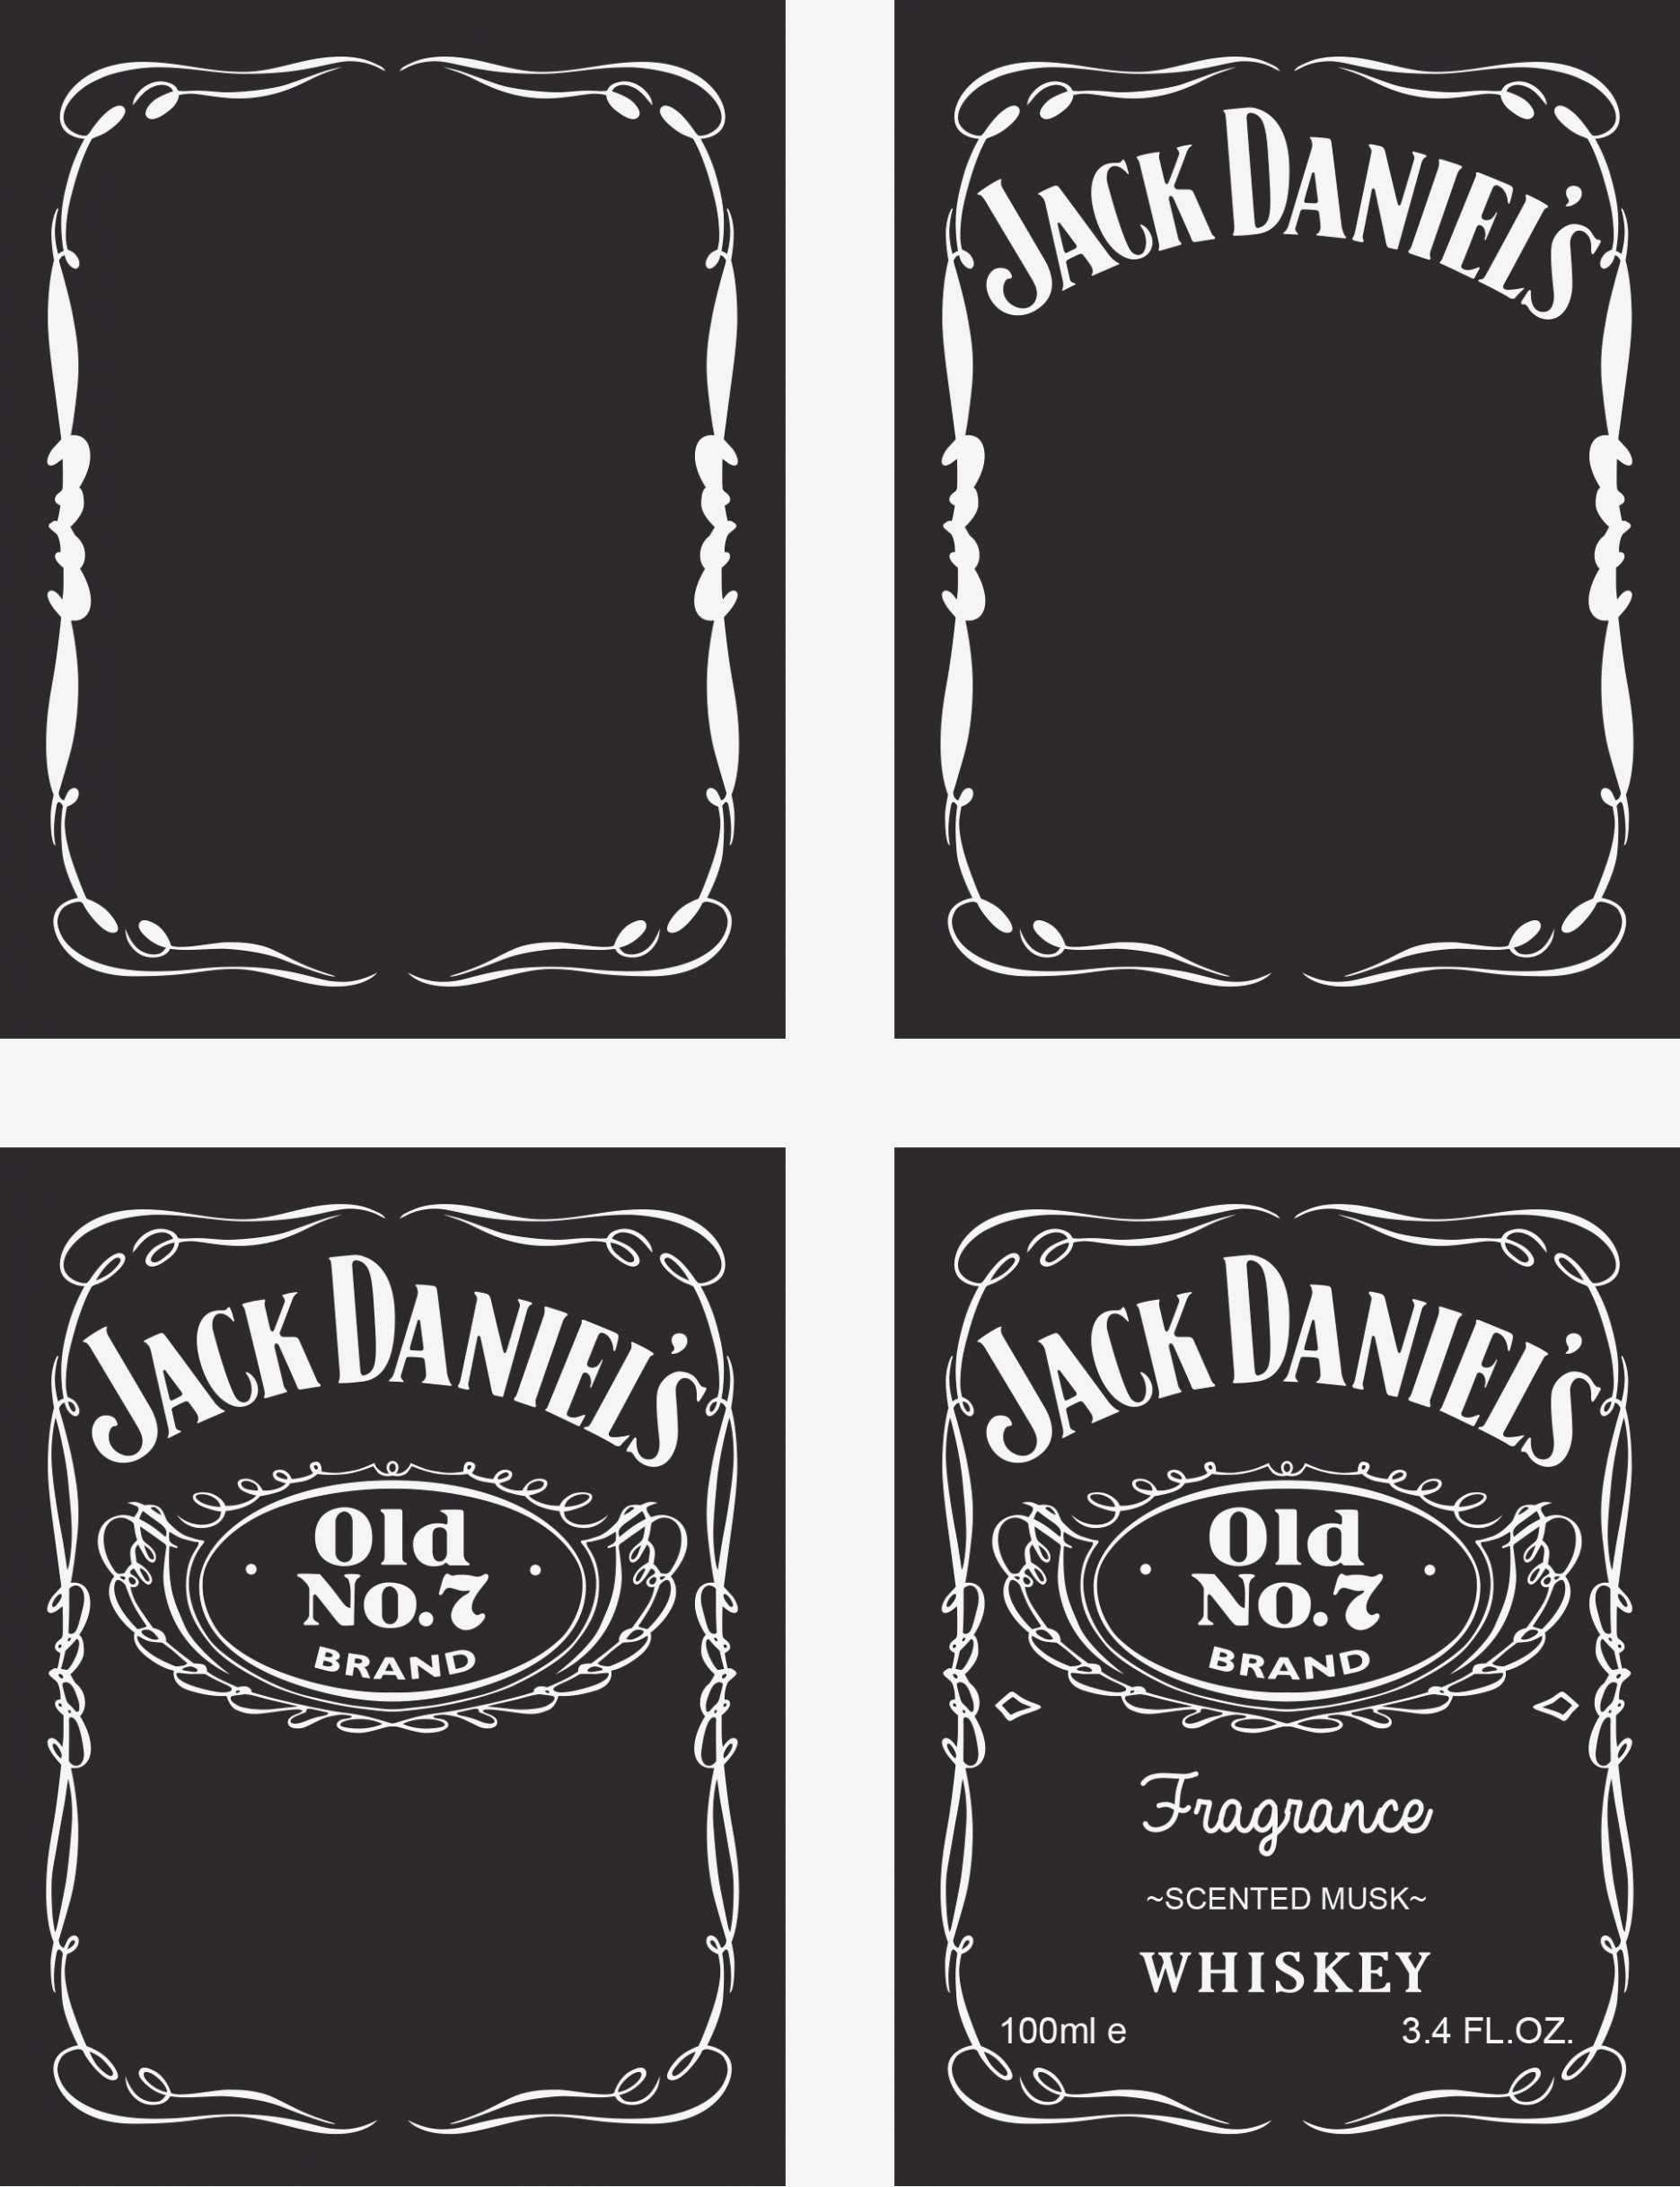 Blank Jack Daniels Label Template - Atlantaauctionco intended for Blank Jack Daniels Label Template